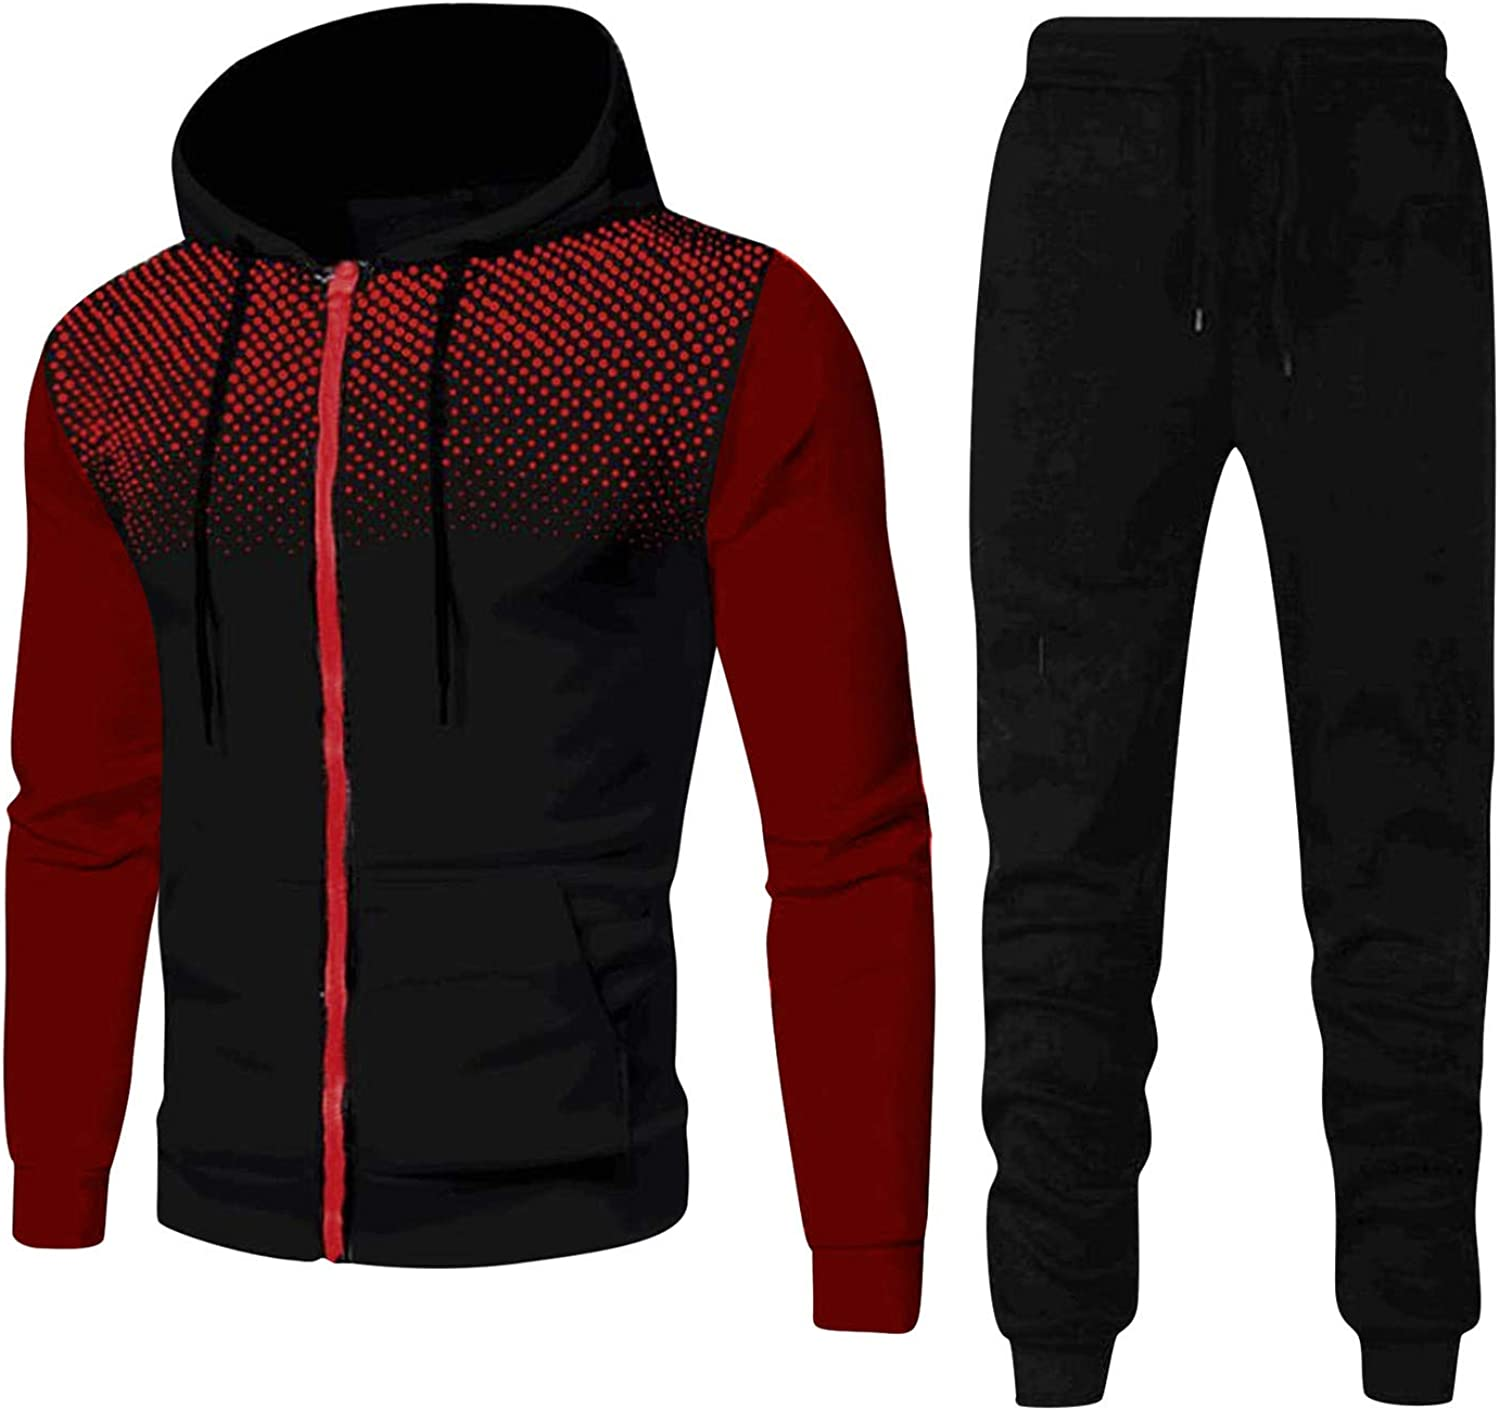 Aayomet Men's Tracksuit Casual Dots Joggers Hoodie Sweatshirt Pants Set Two Piece Sweatsuits Outfits Sports Suit Activewear